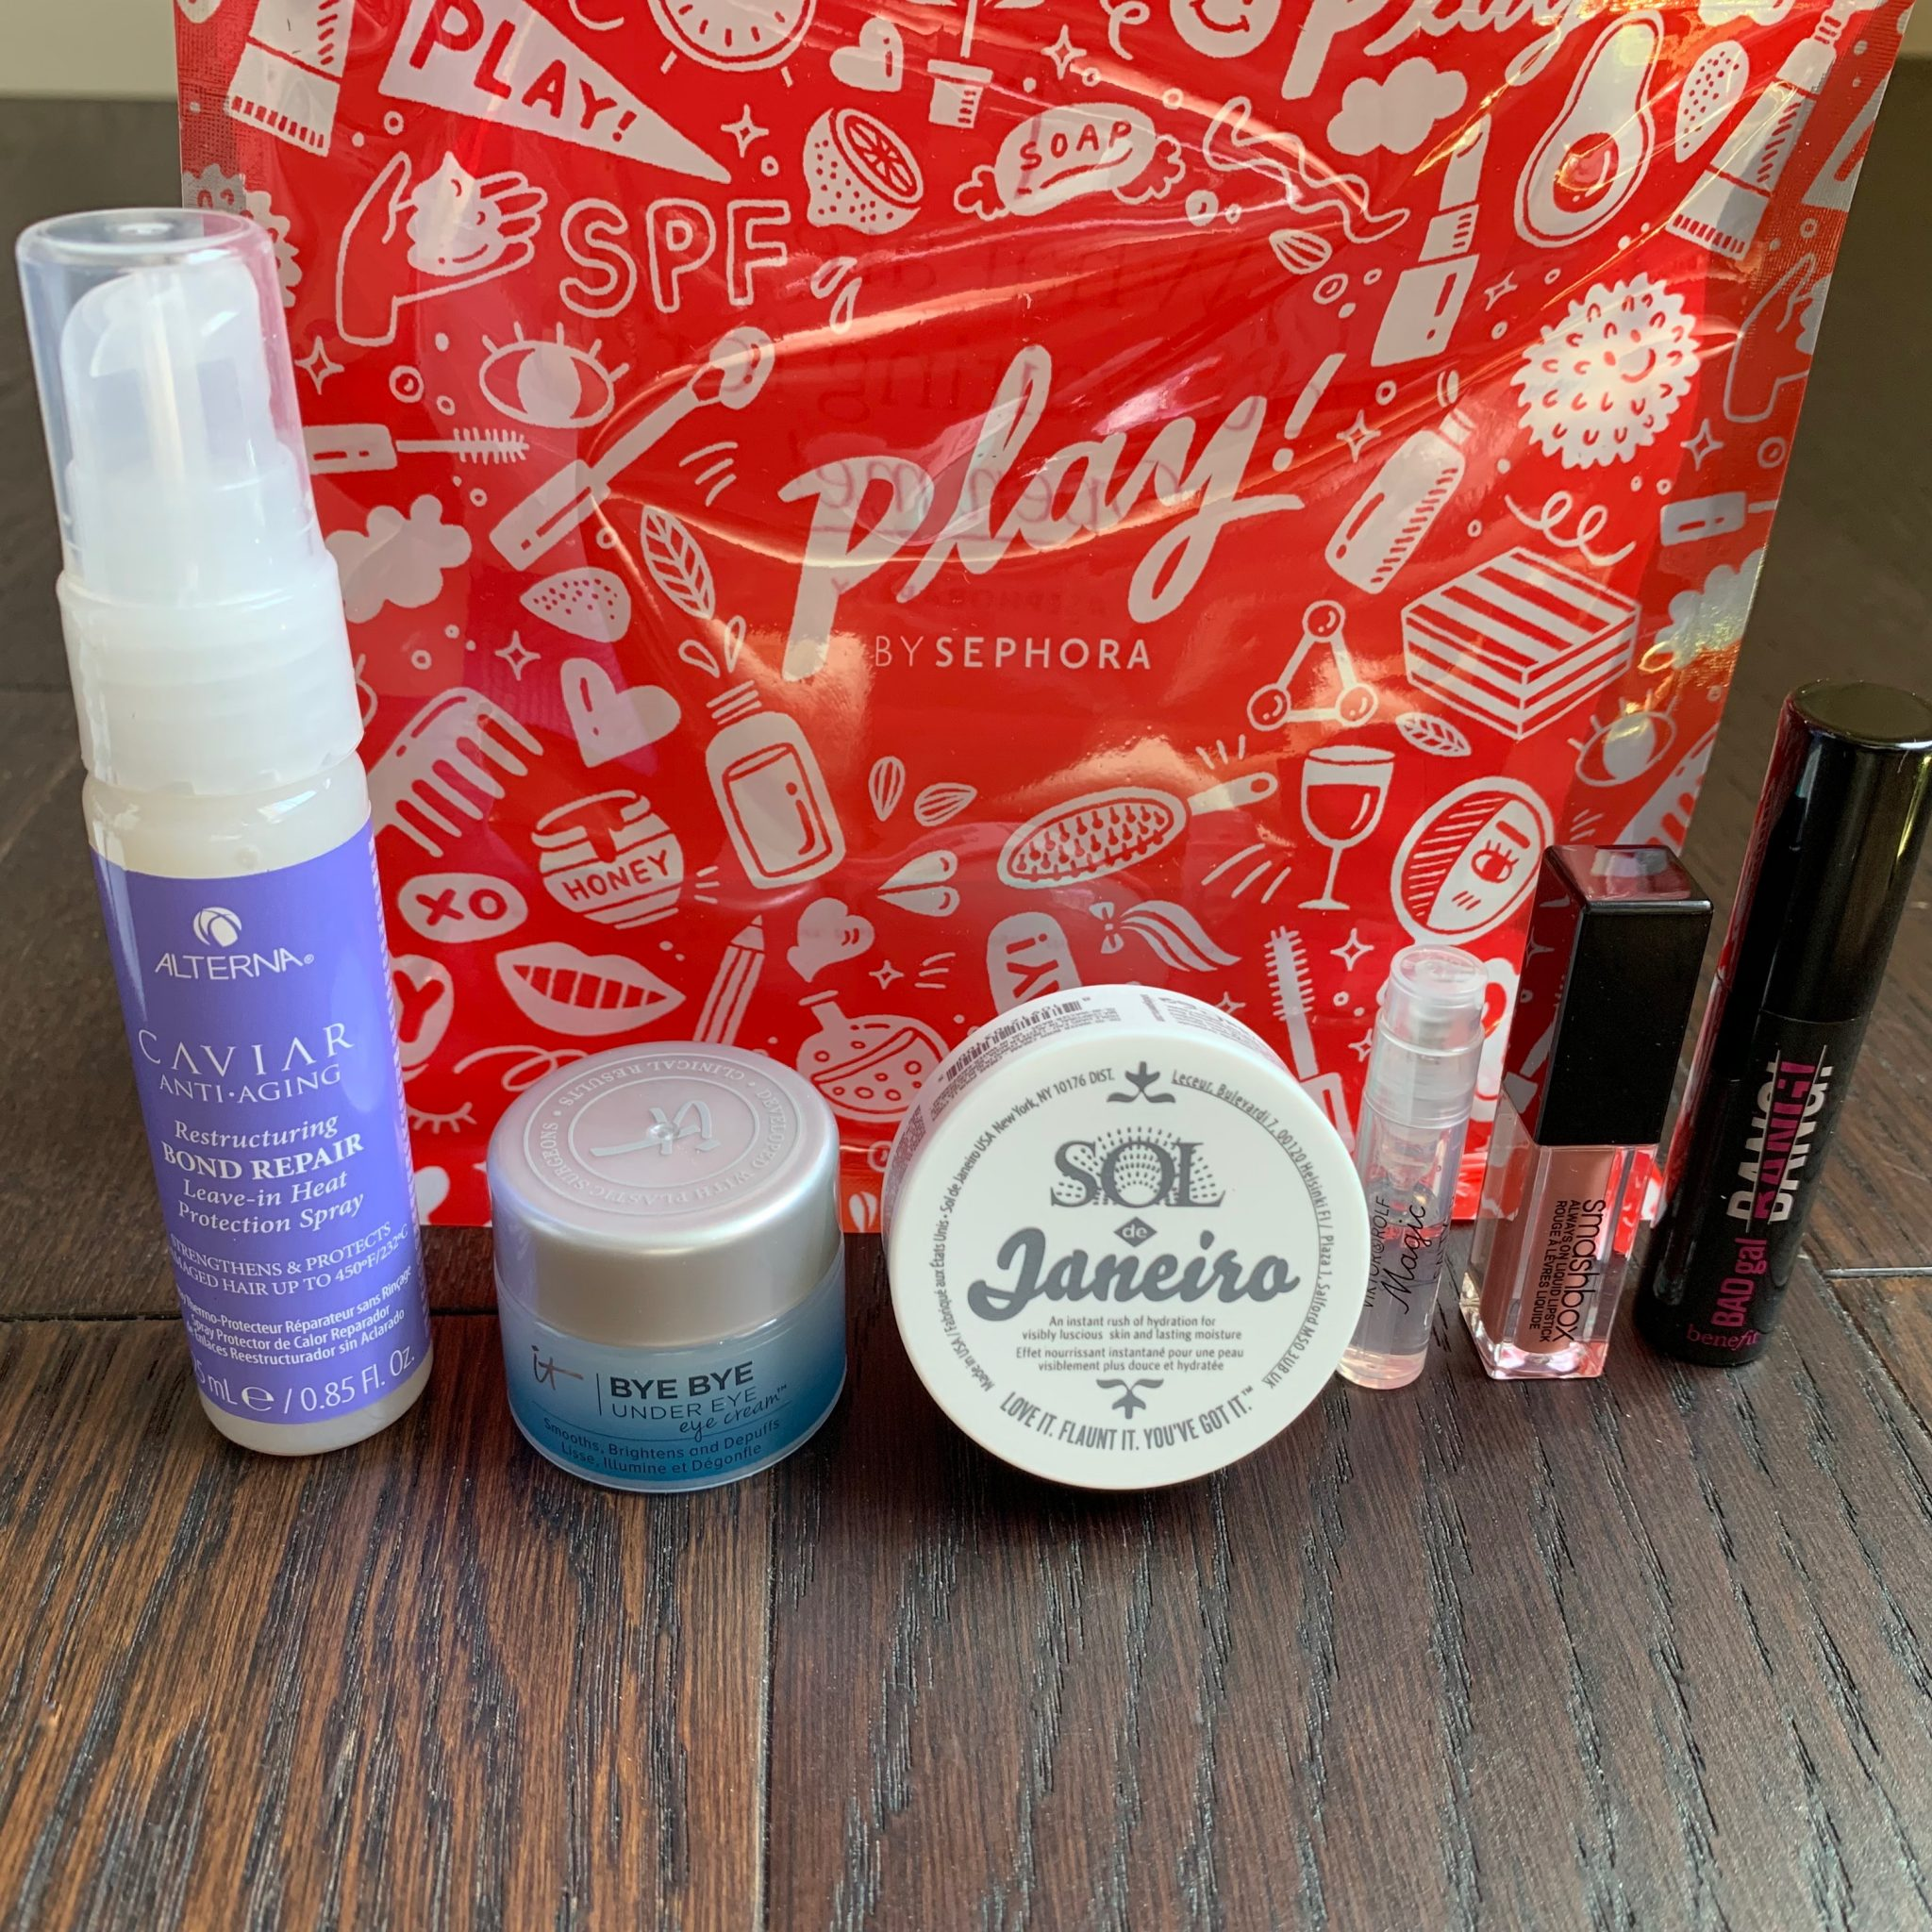 Play! by Sephora Review – May 2019